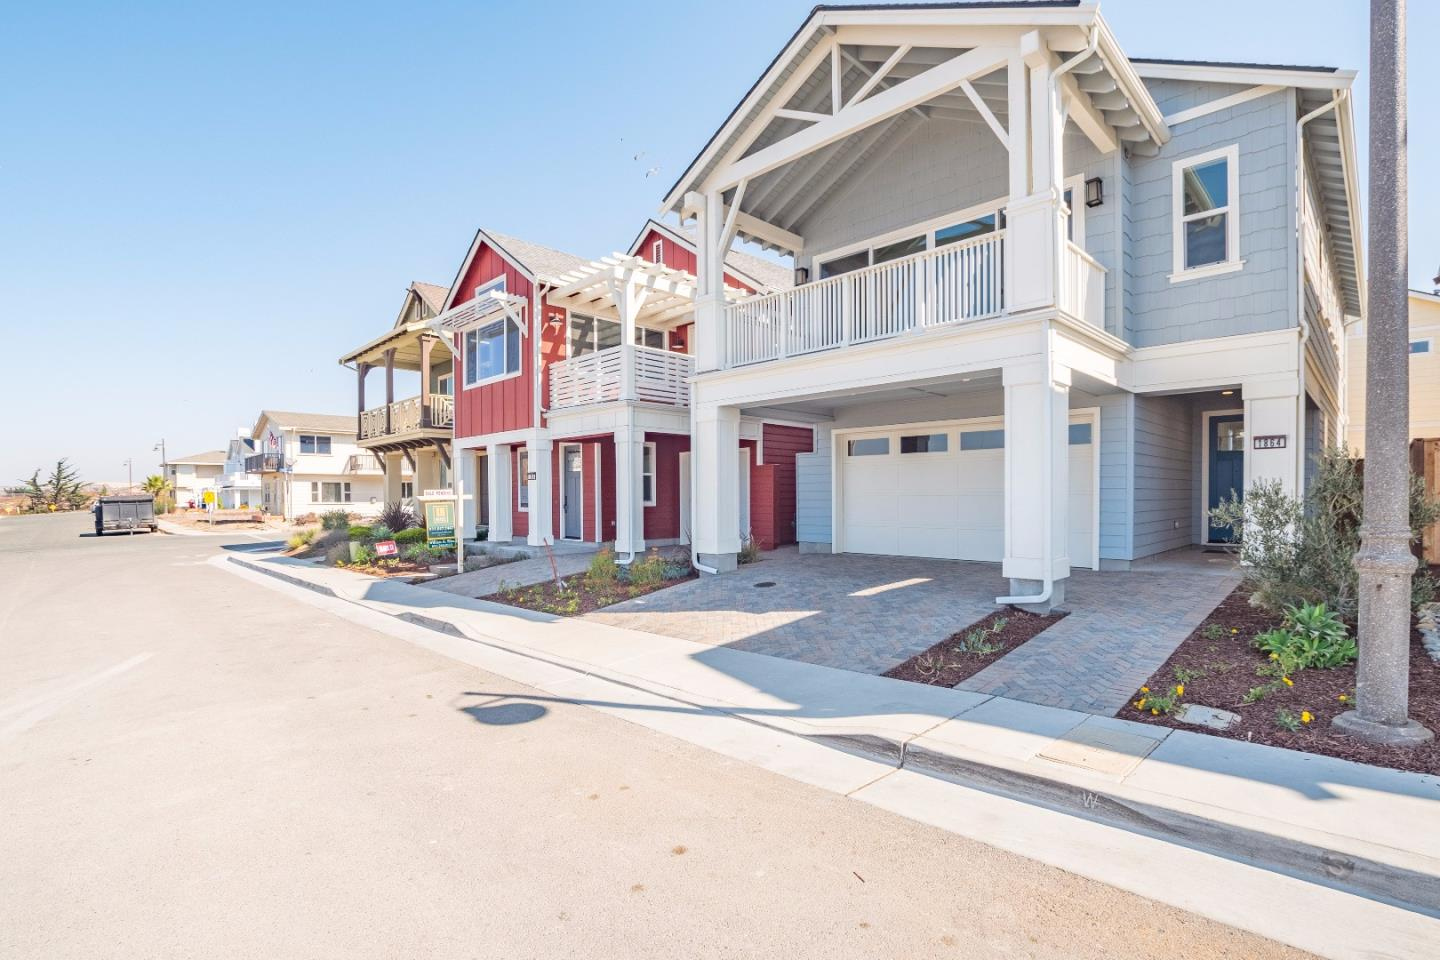 1864 Park Avenue, SAND CITY, CA 93955